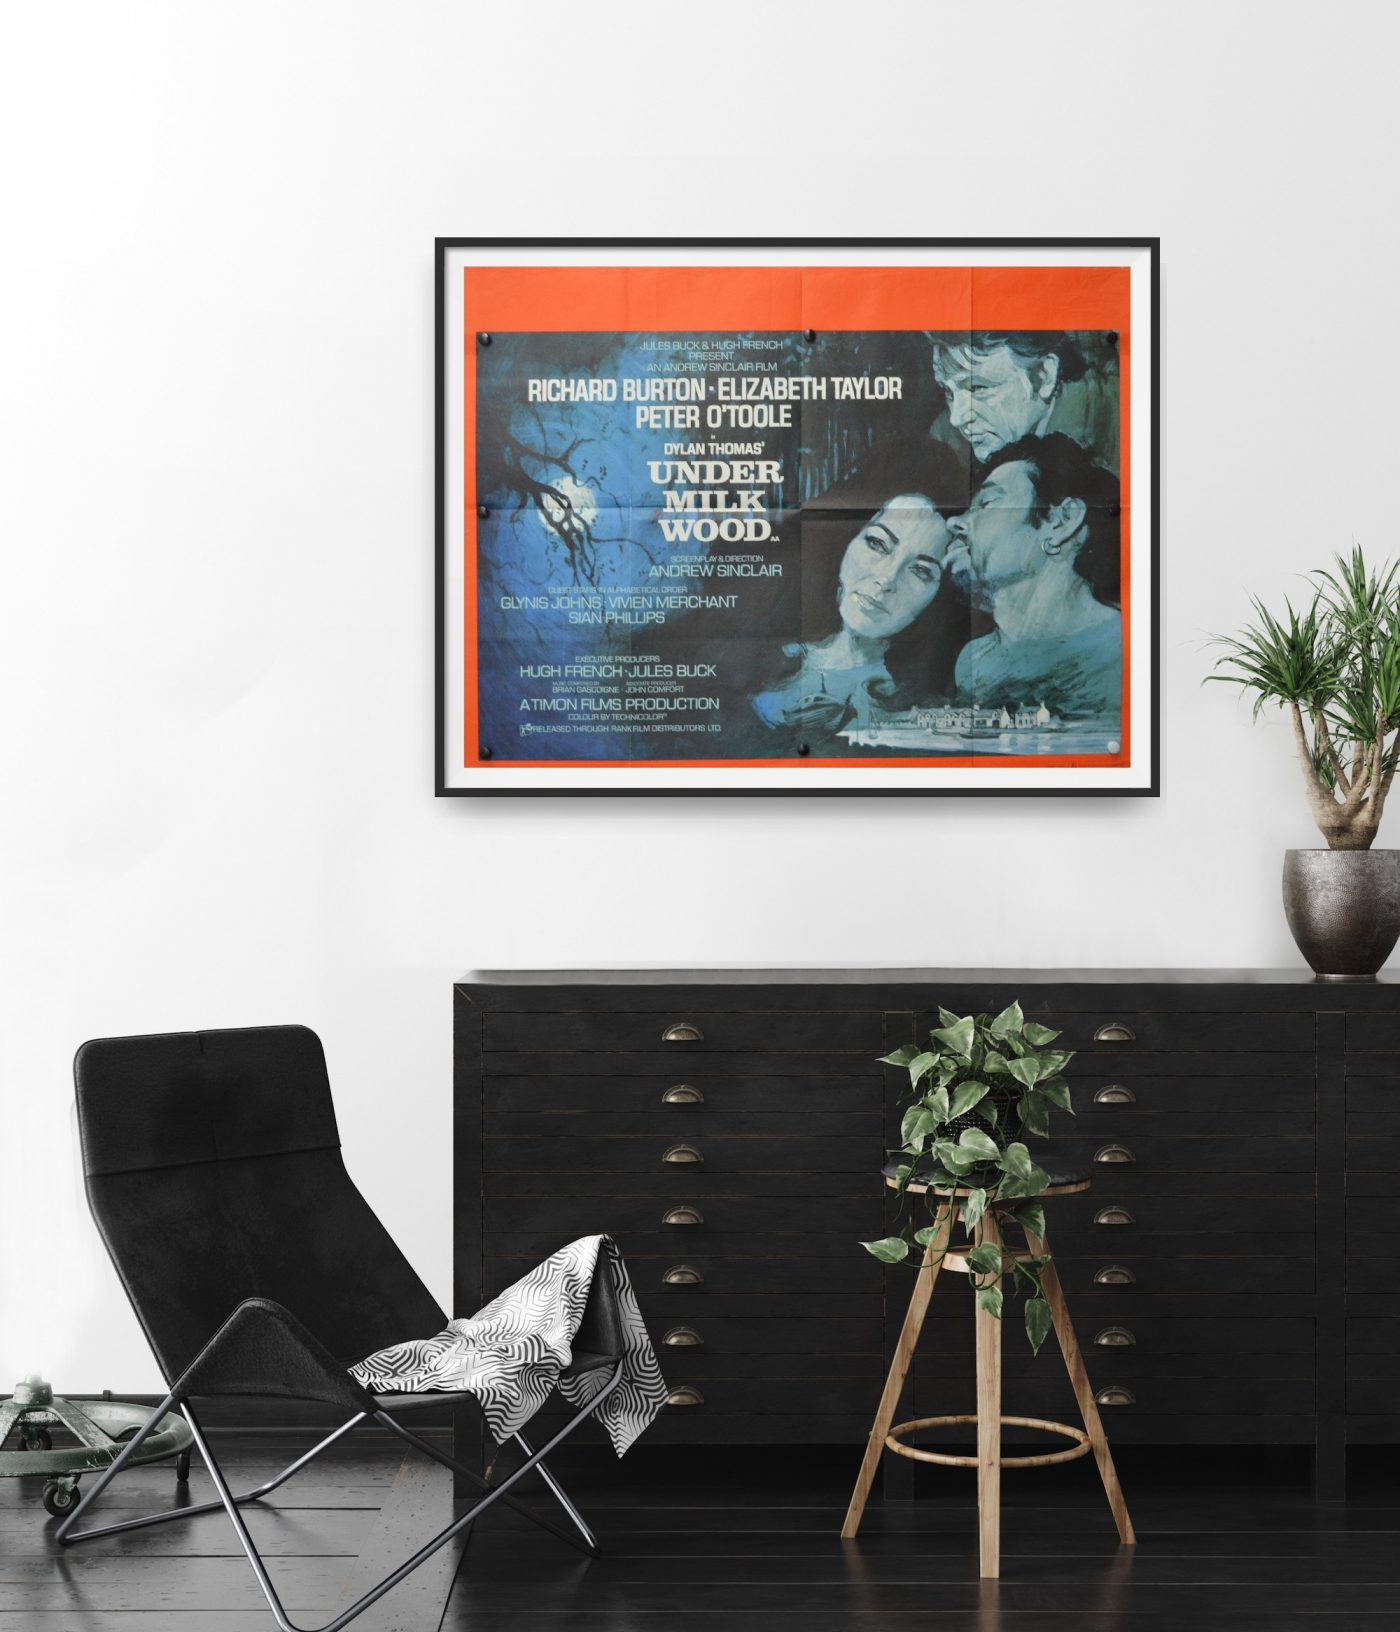 This poster for the film 'Under Milk Wood' shows a painting of Richard Harris, Peter O'Toole and Elizabeth Taylor. The picture is hung in a room for scalee.